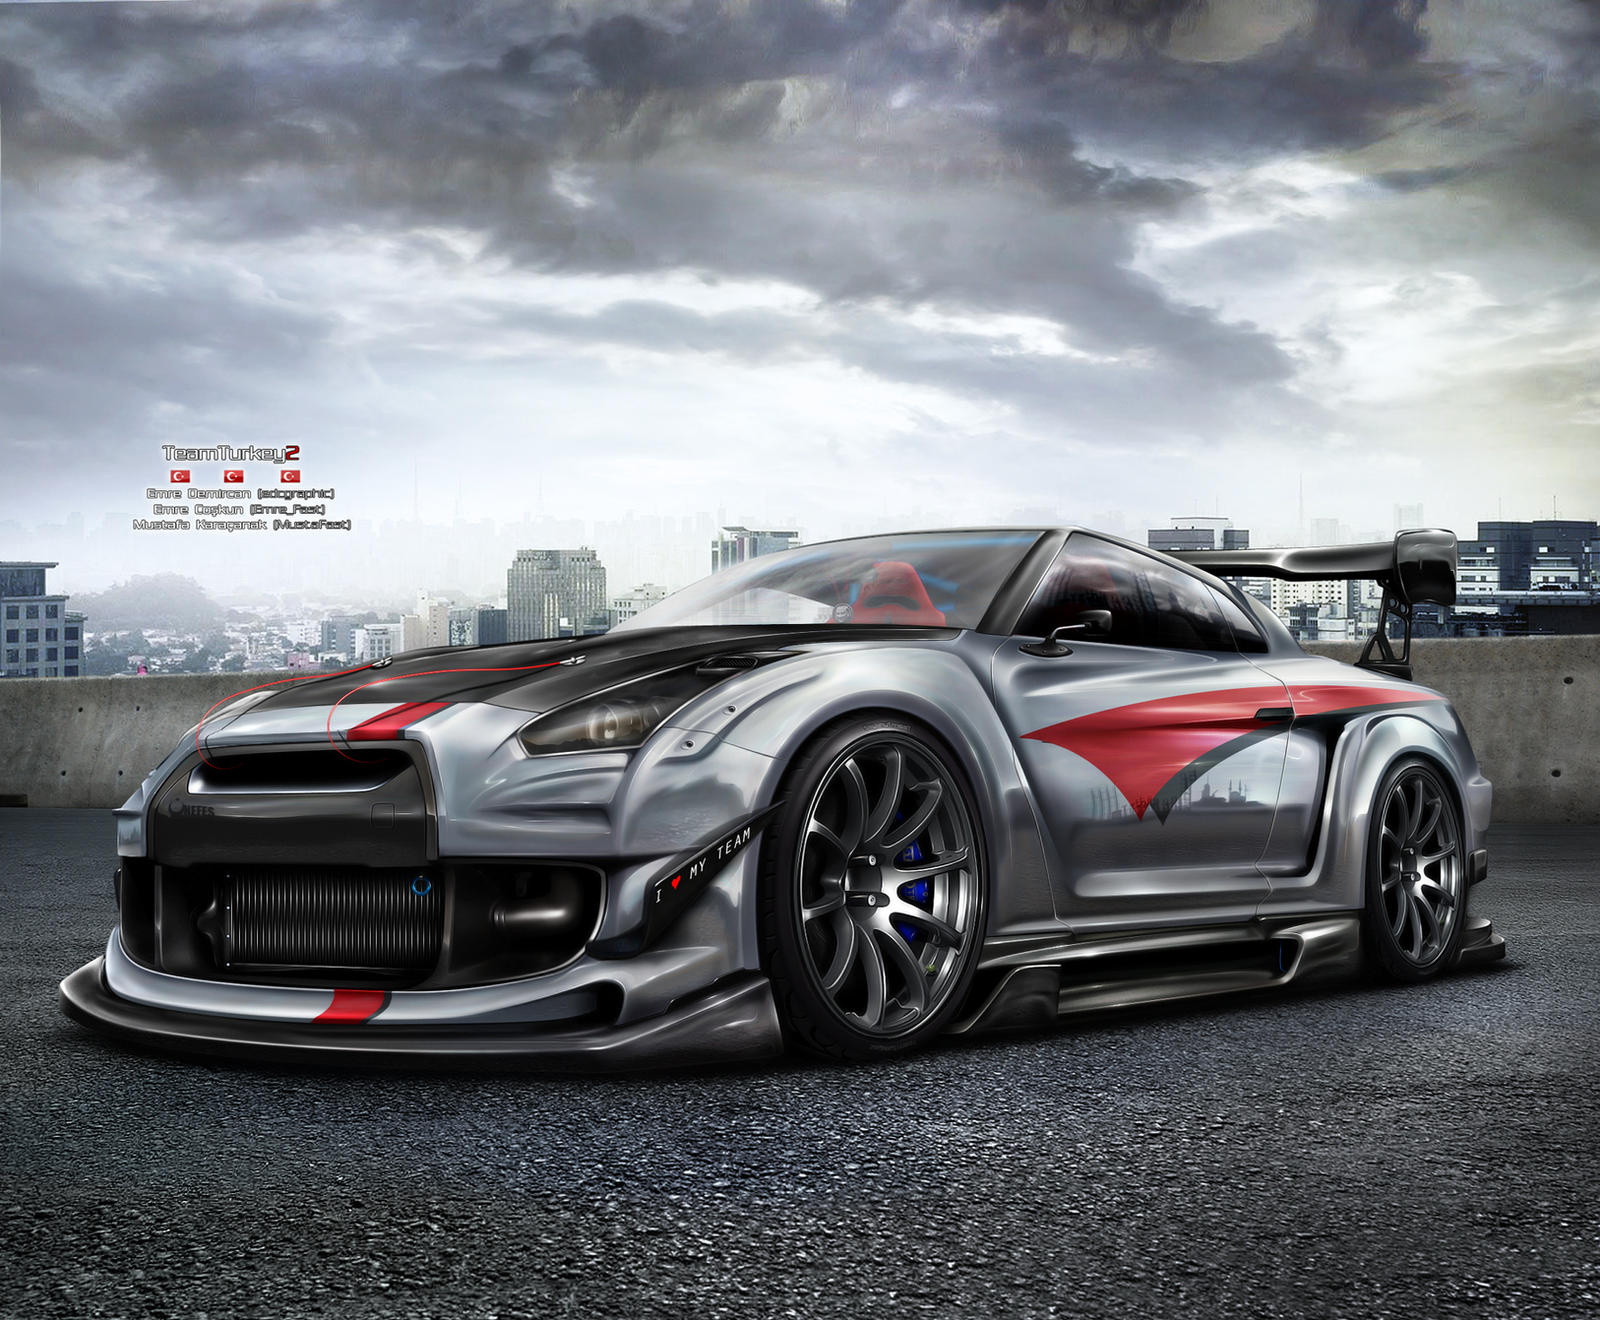 nissan gtr r35 team turkey 2 by emrefast on deviantart. Black Bedroom Furniture Sets. Home Design Ideas